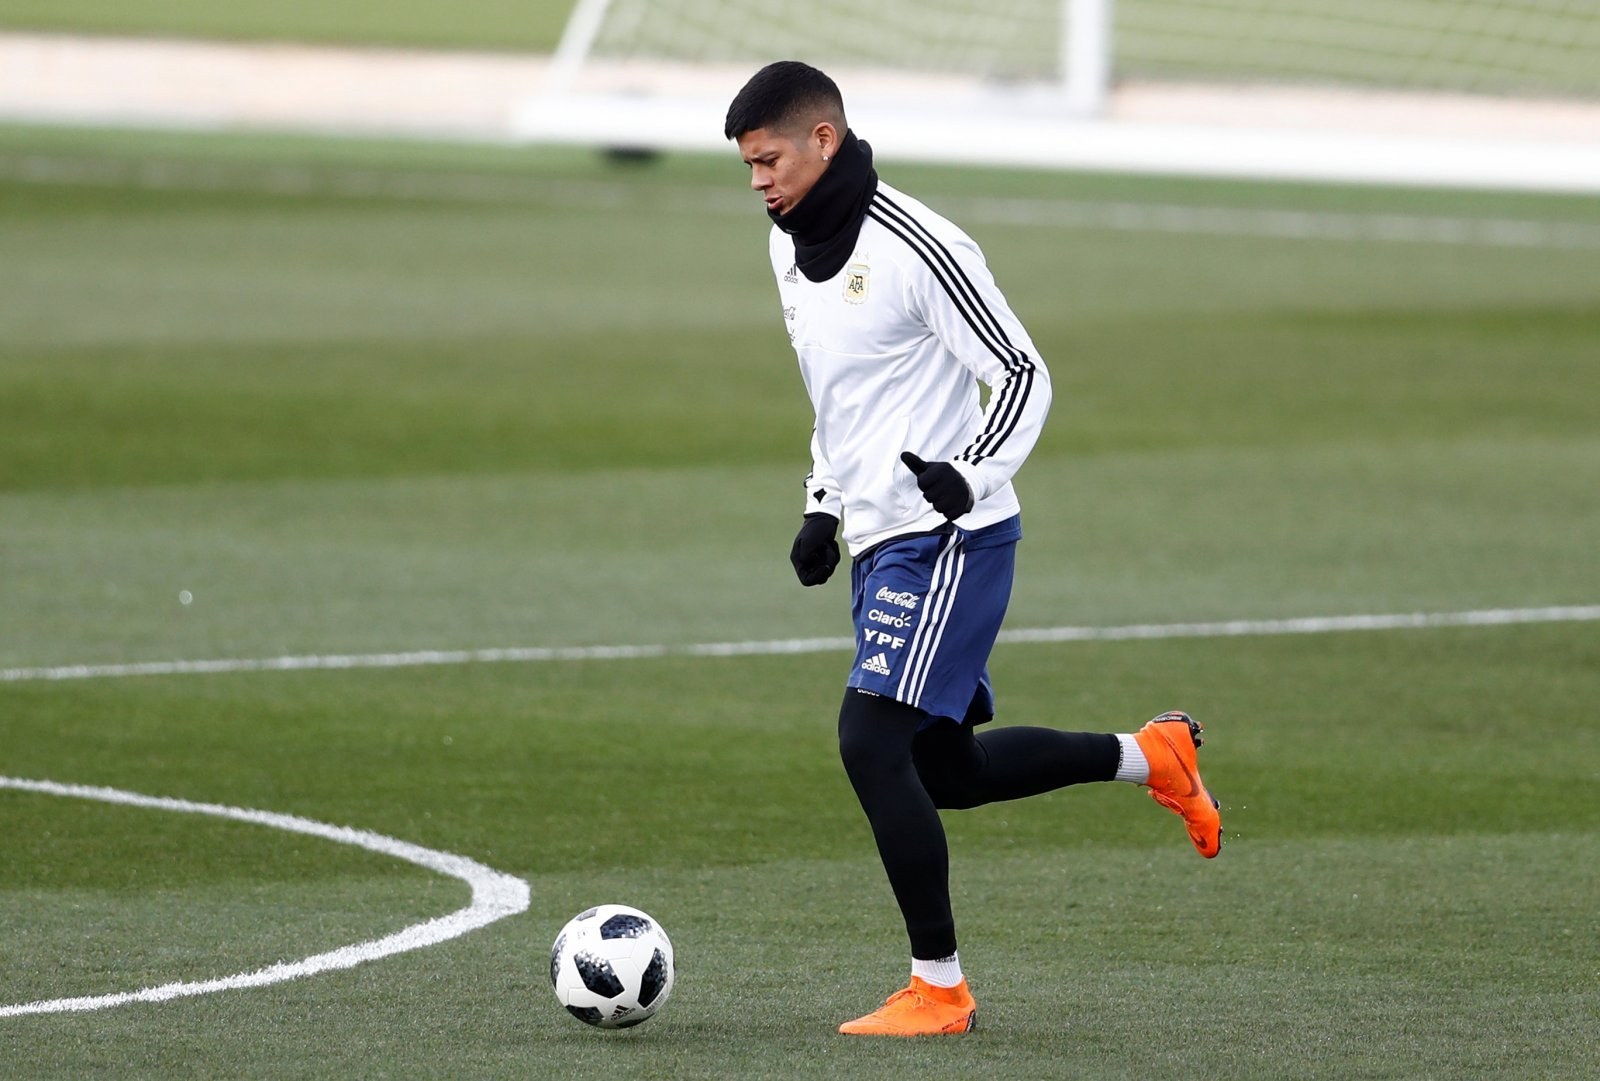 Newcastle should hijack Everton's deal for Marcos Rojo